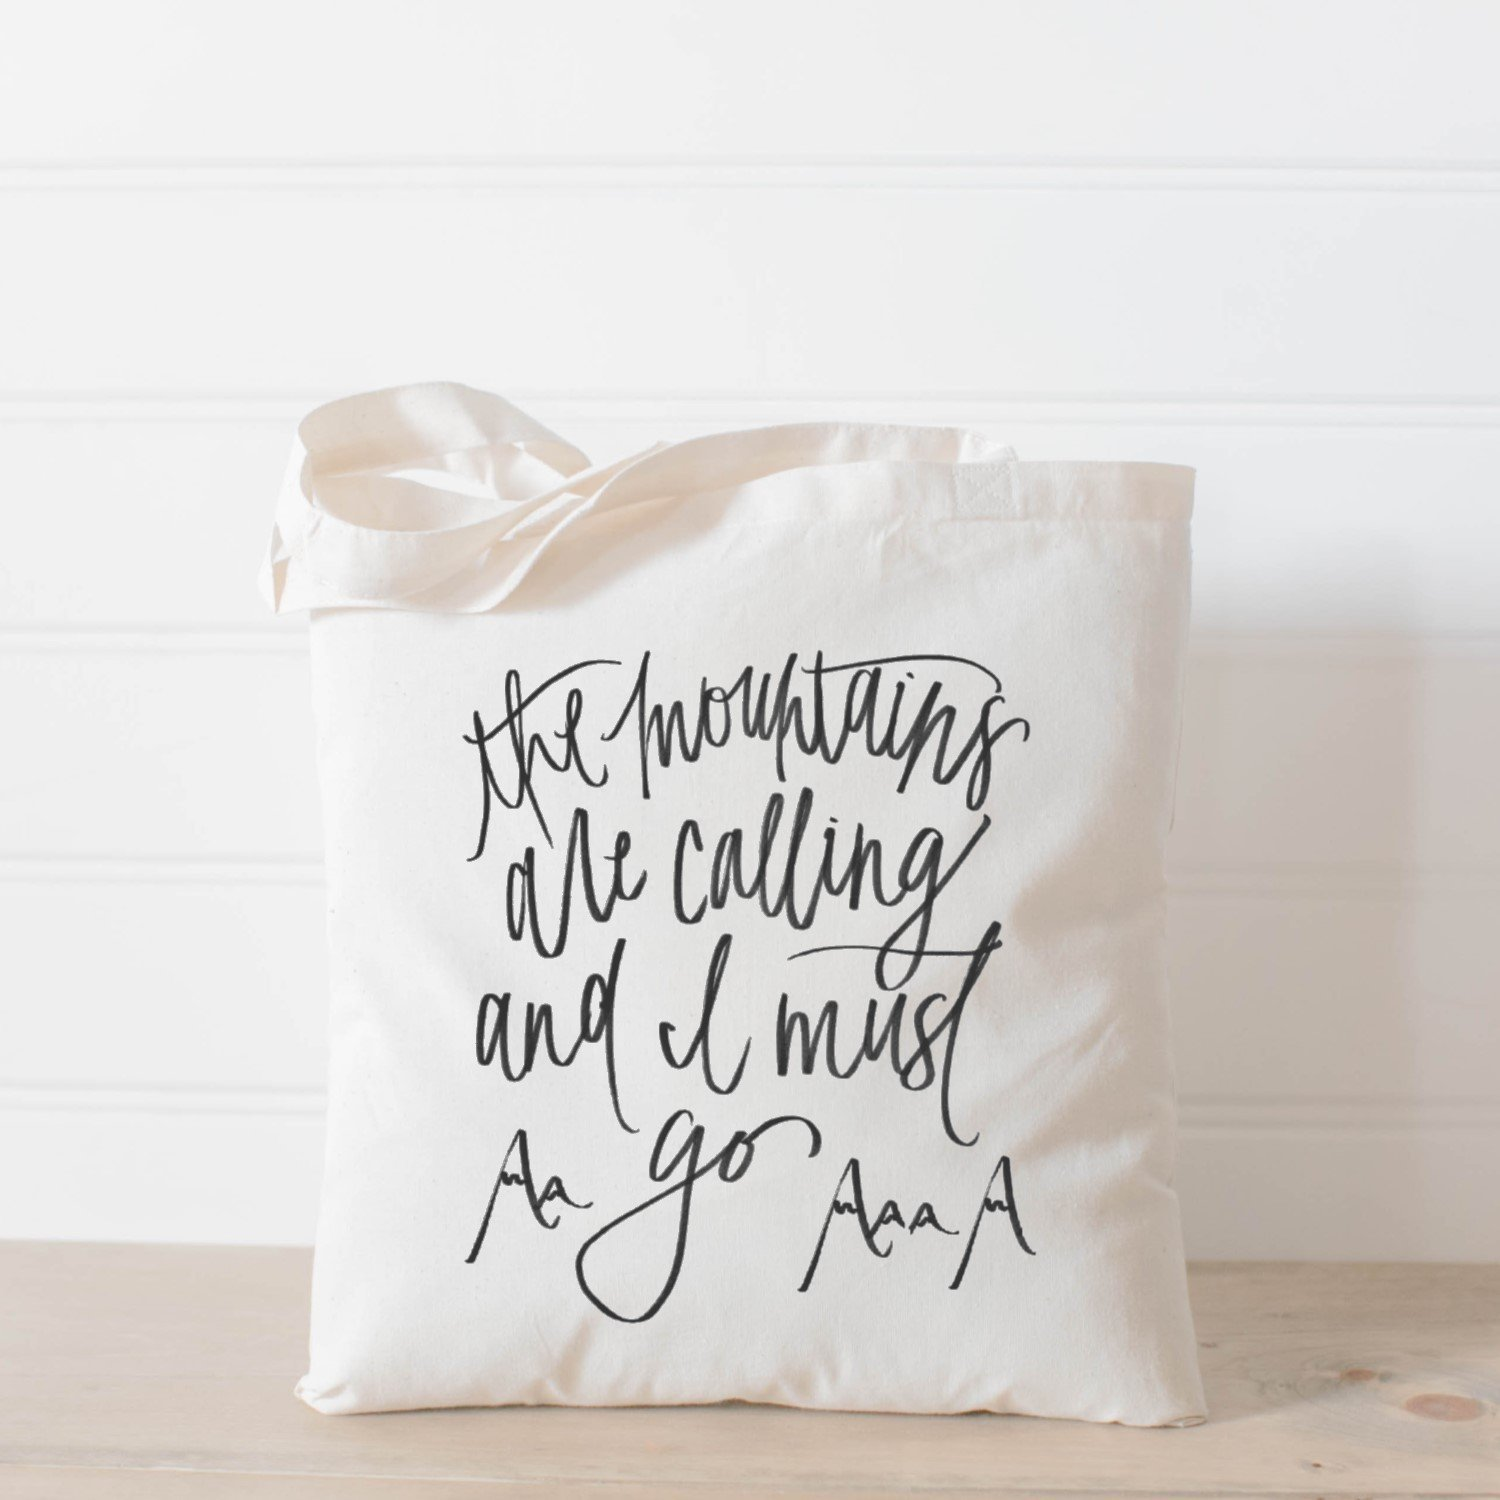 Tote Bag, The Mountains Are Calling, Handmade in the USA, present, housewarming gift, wedding favor, bridesmaid gift, women's gift by PCB Home